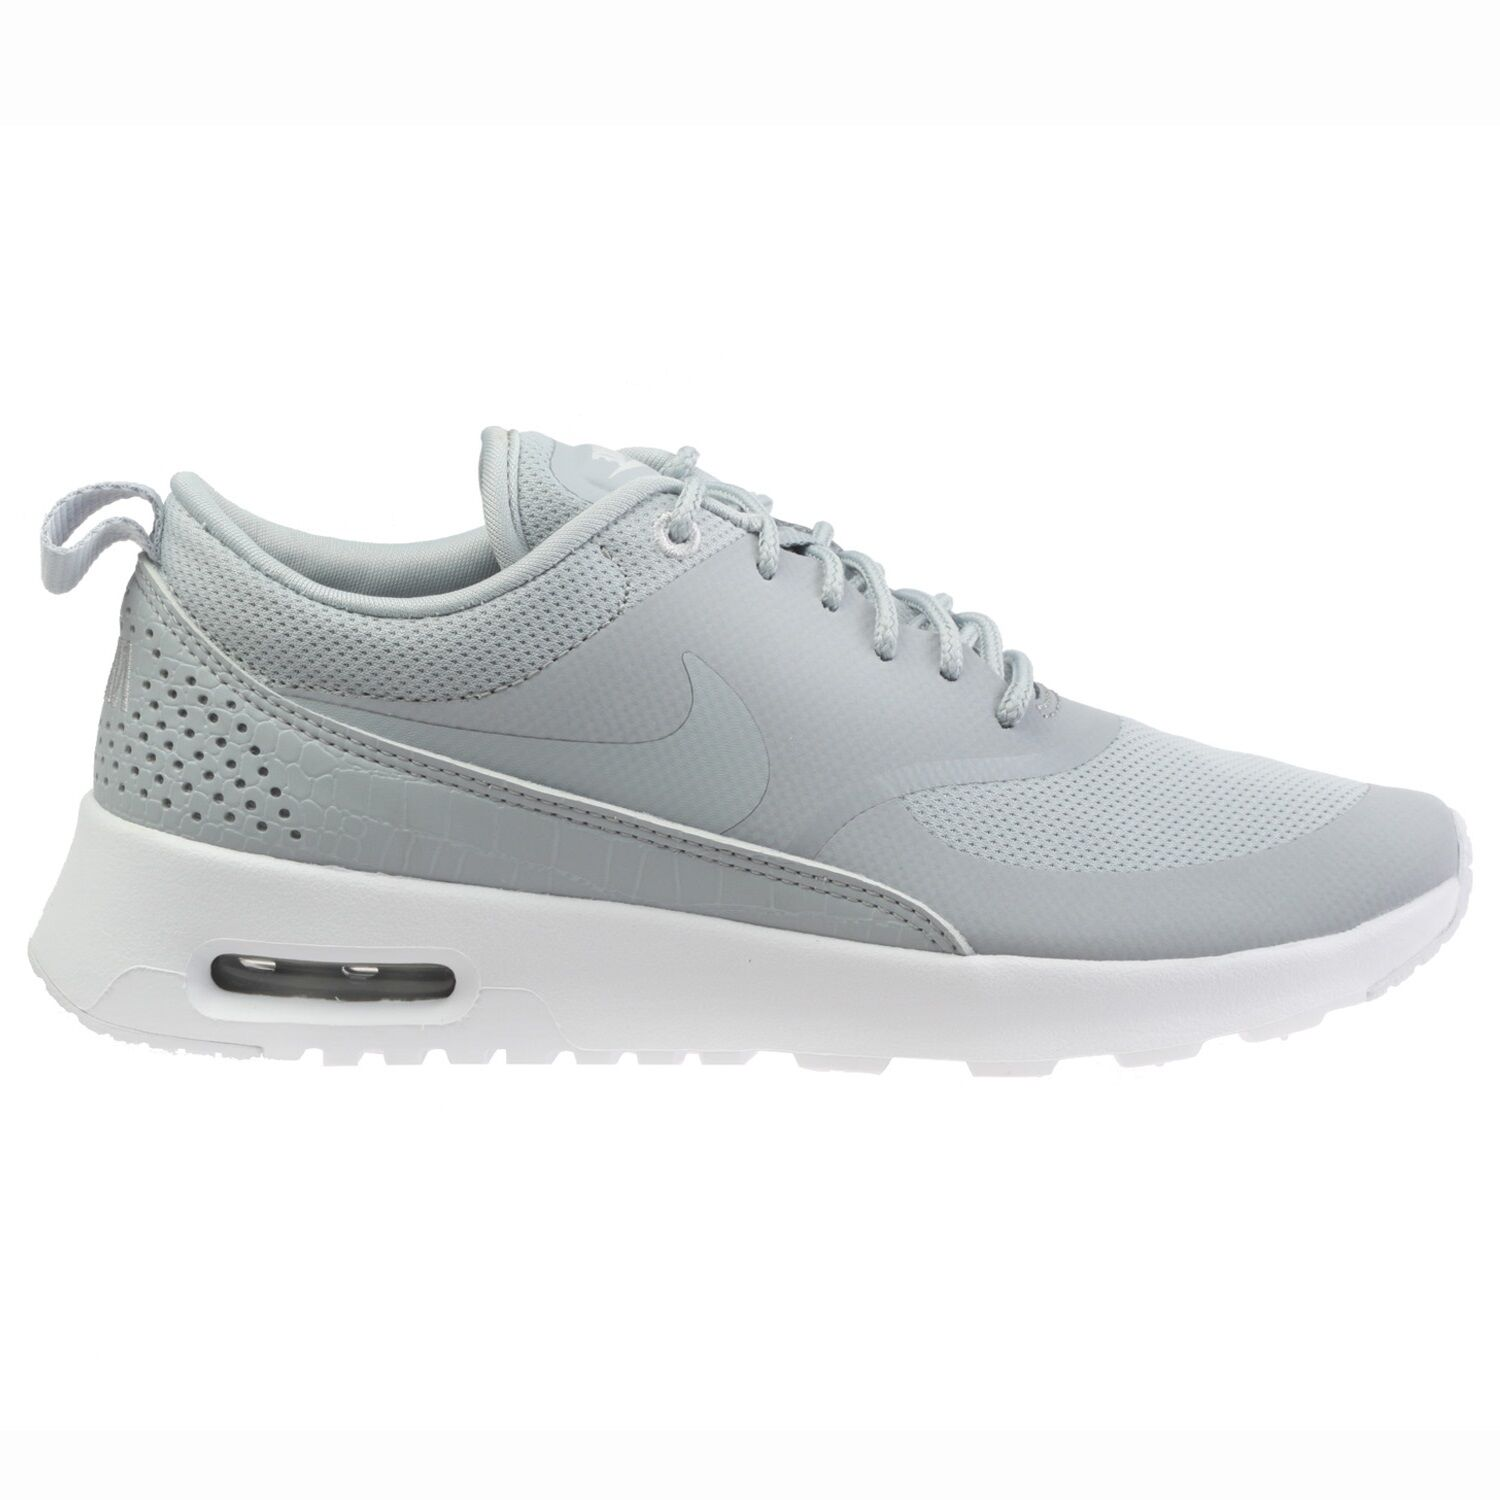 Nike Air Max Thea Womens 599409-023 Wolf Grey Textile Running shoes Size 7.5